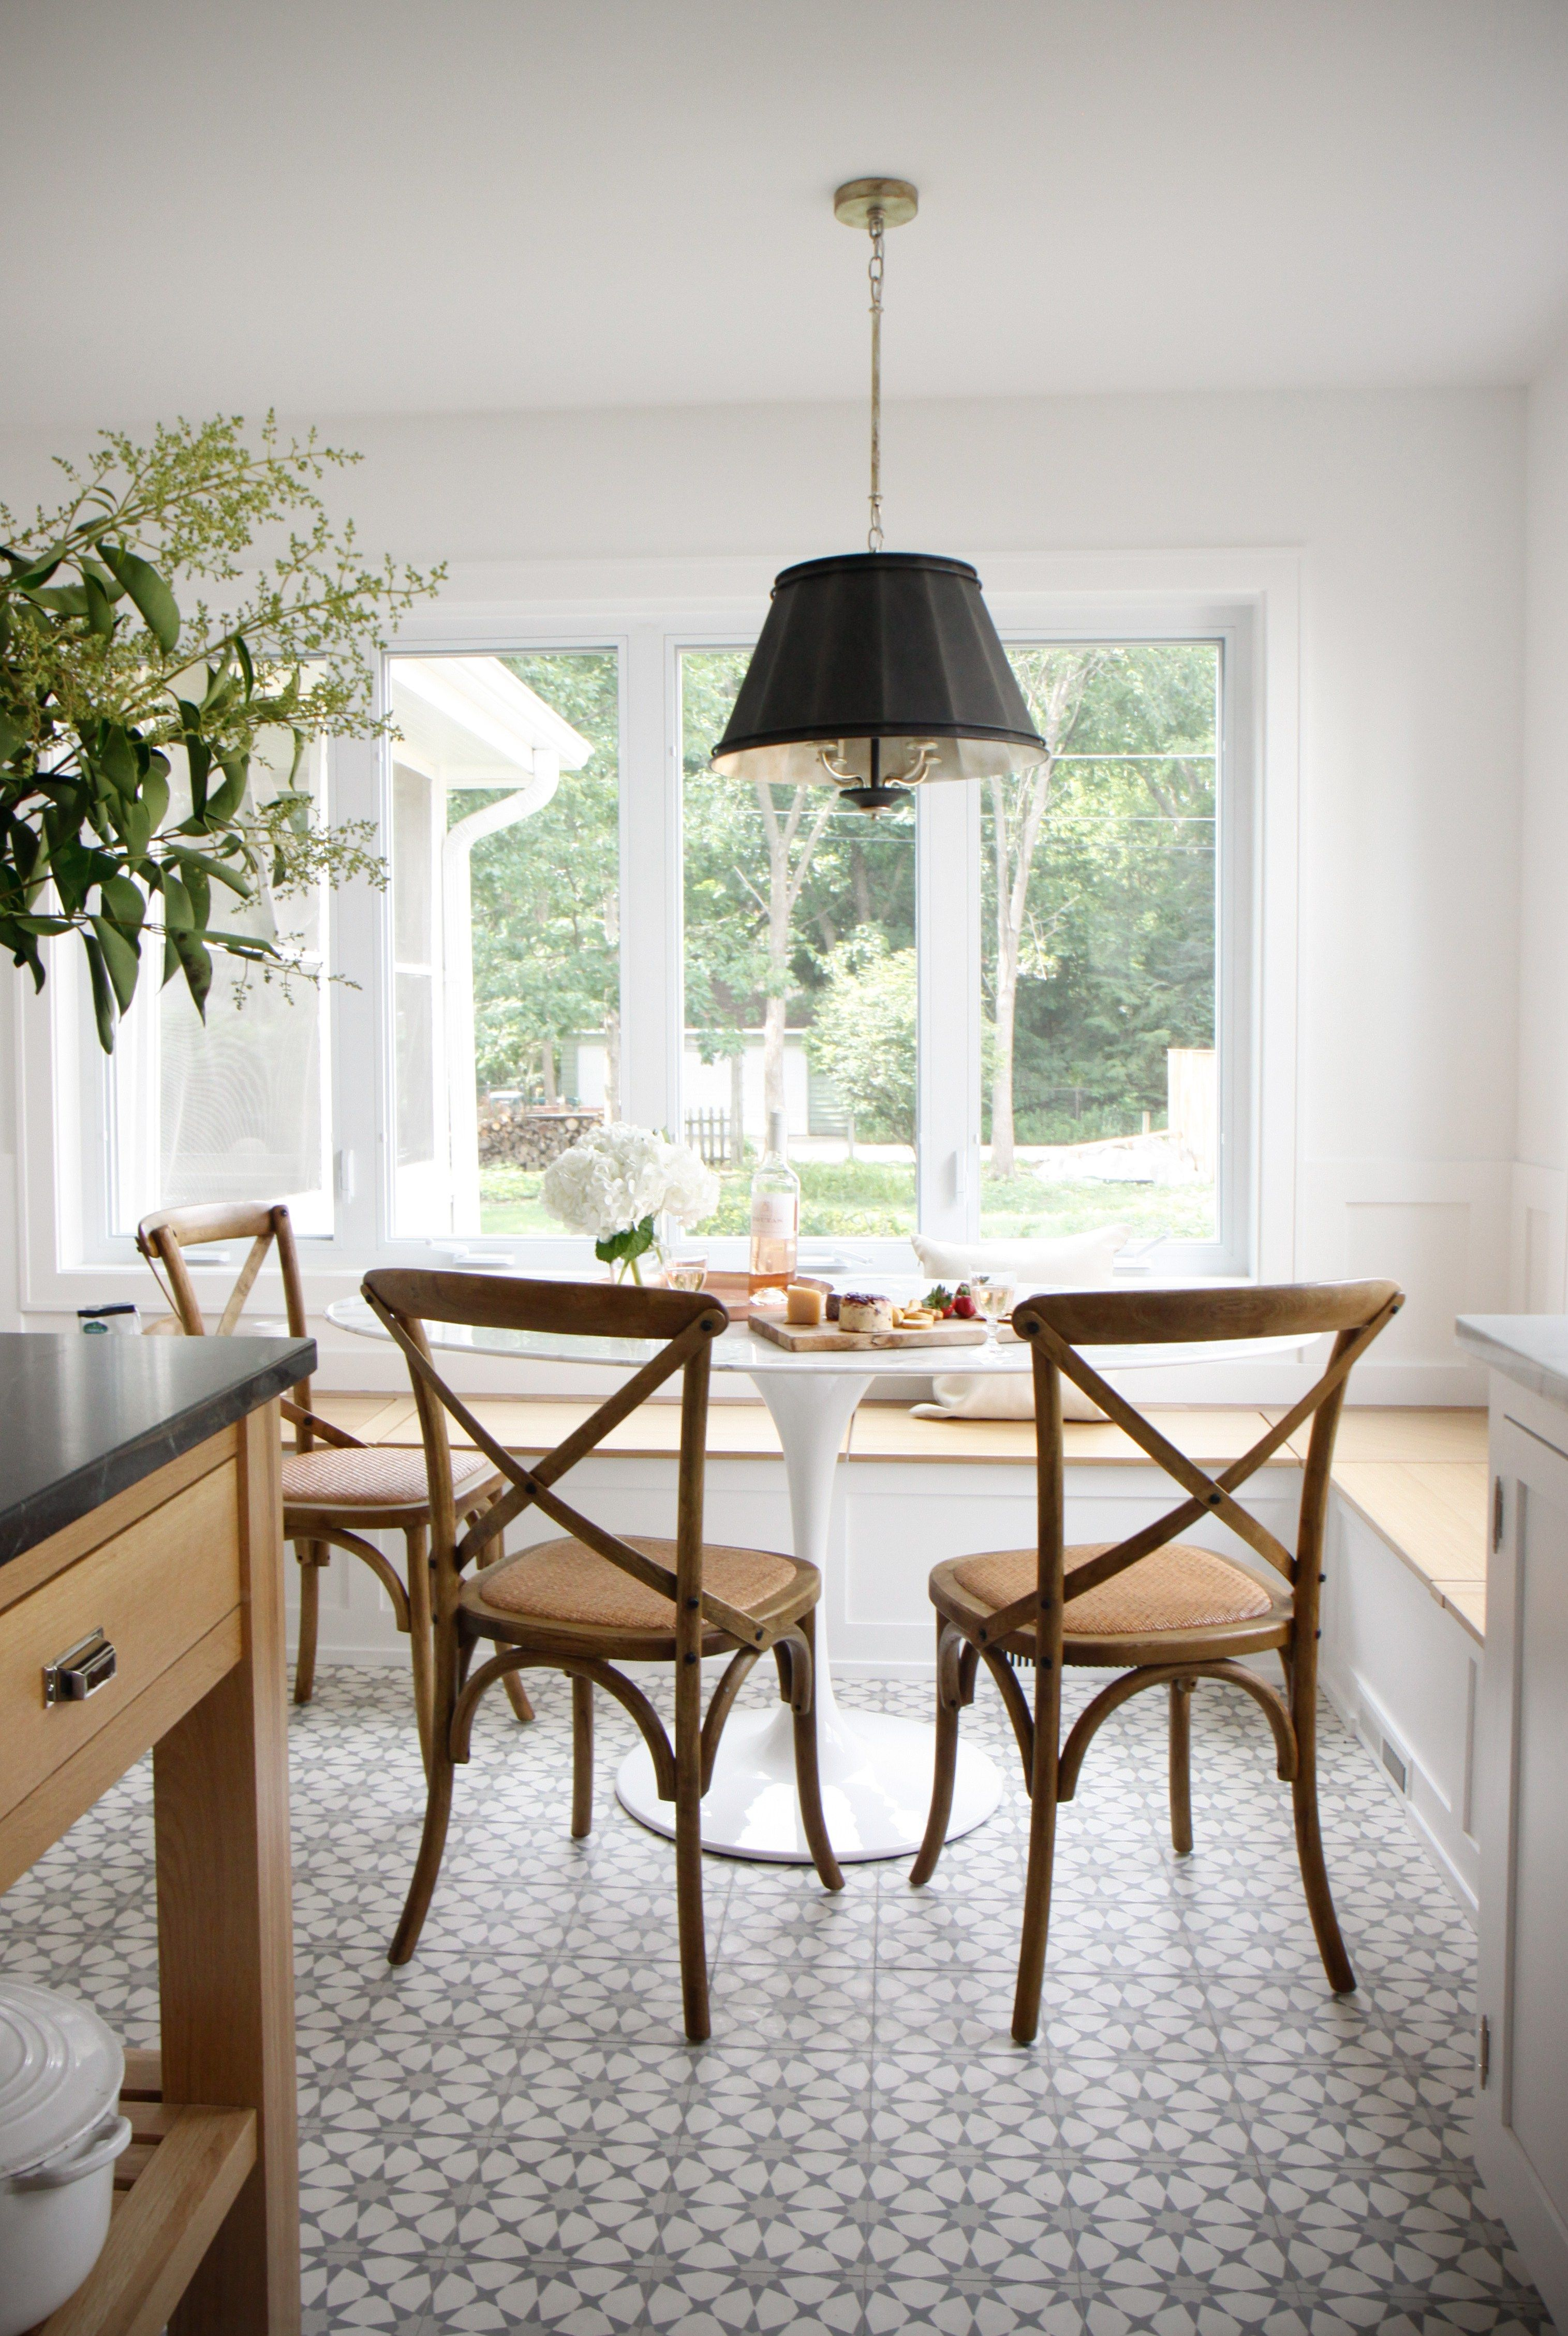 Wilmette Renovation Kitchen Before And After Park And Oak Interior Design Dining Nook Dining Room Design Dining Room Decor